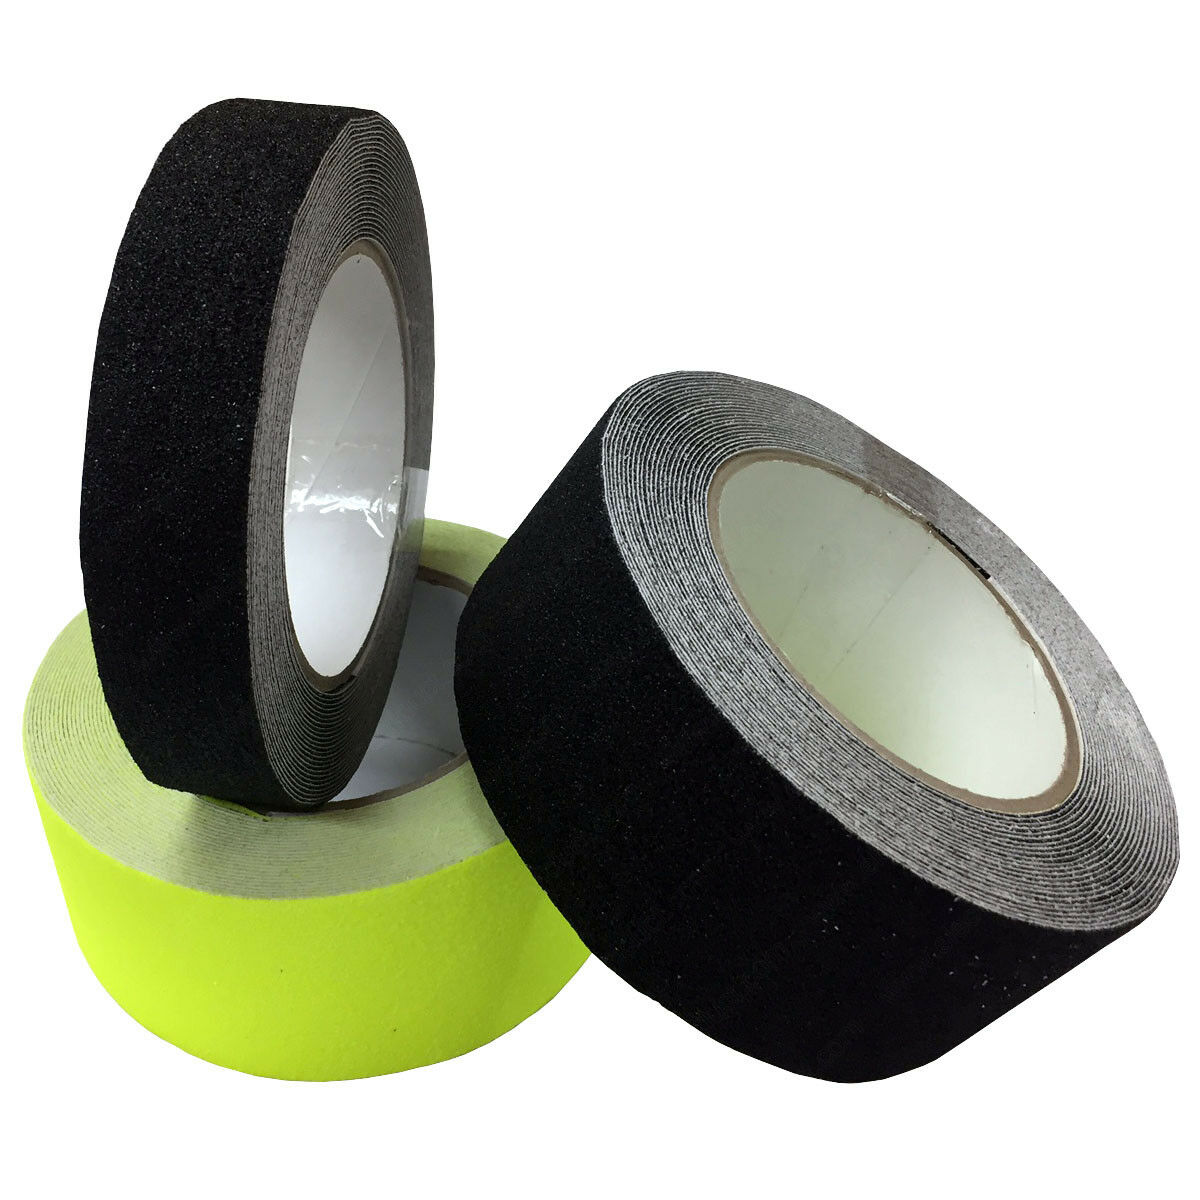 "Anti-Slip Non-Skid Floor Tapes - 1"" - 2"" - Black, Yellow Opt"